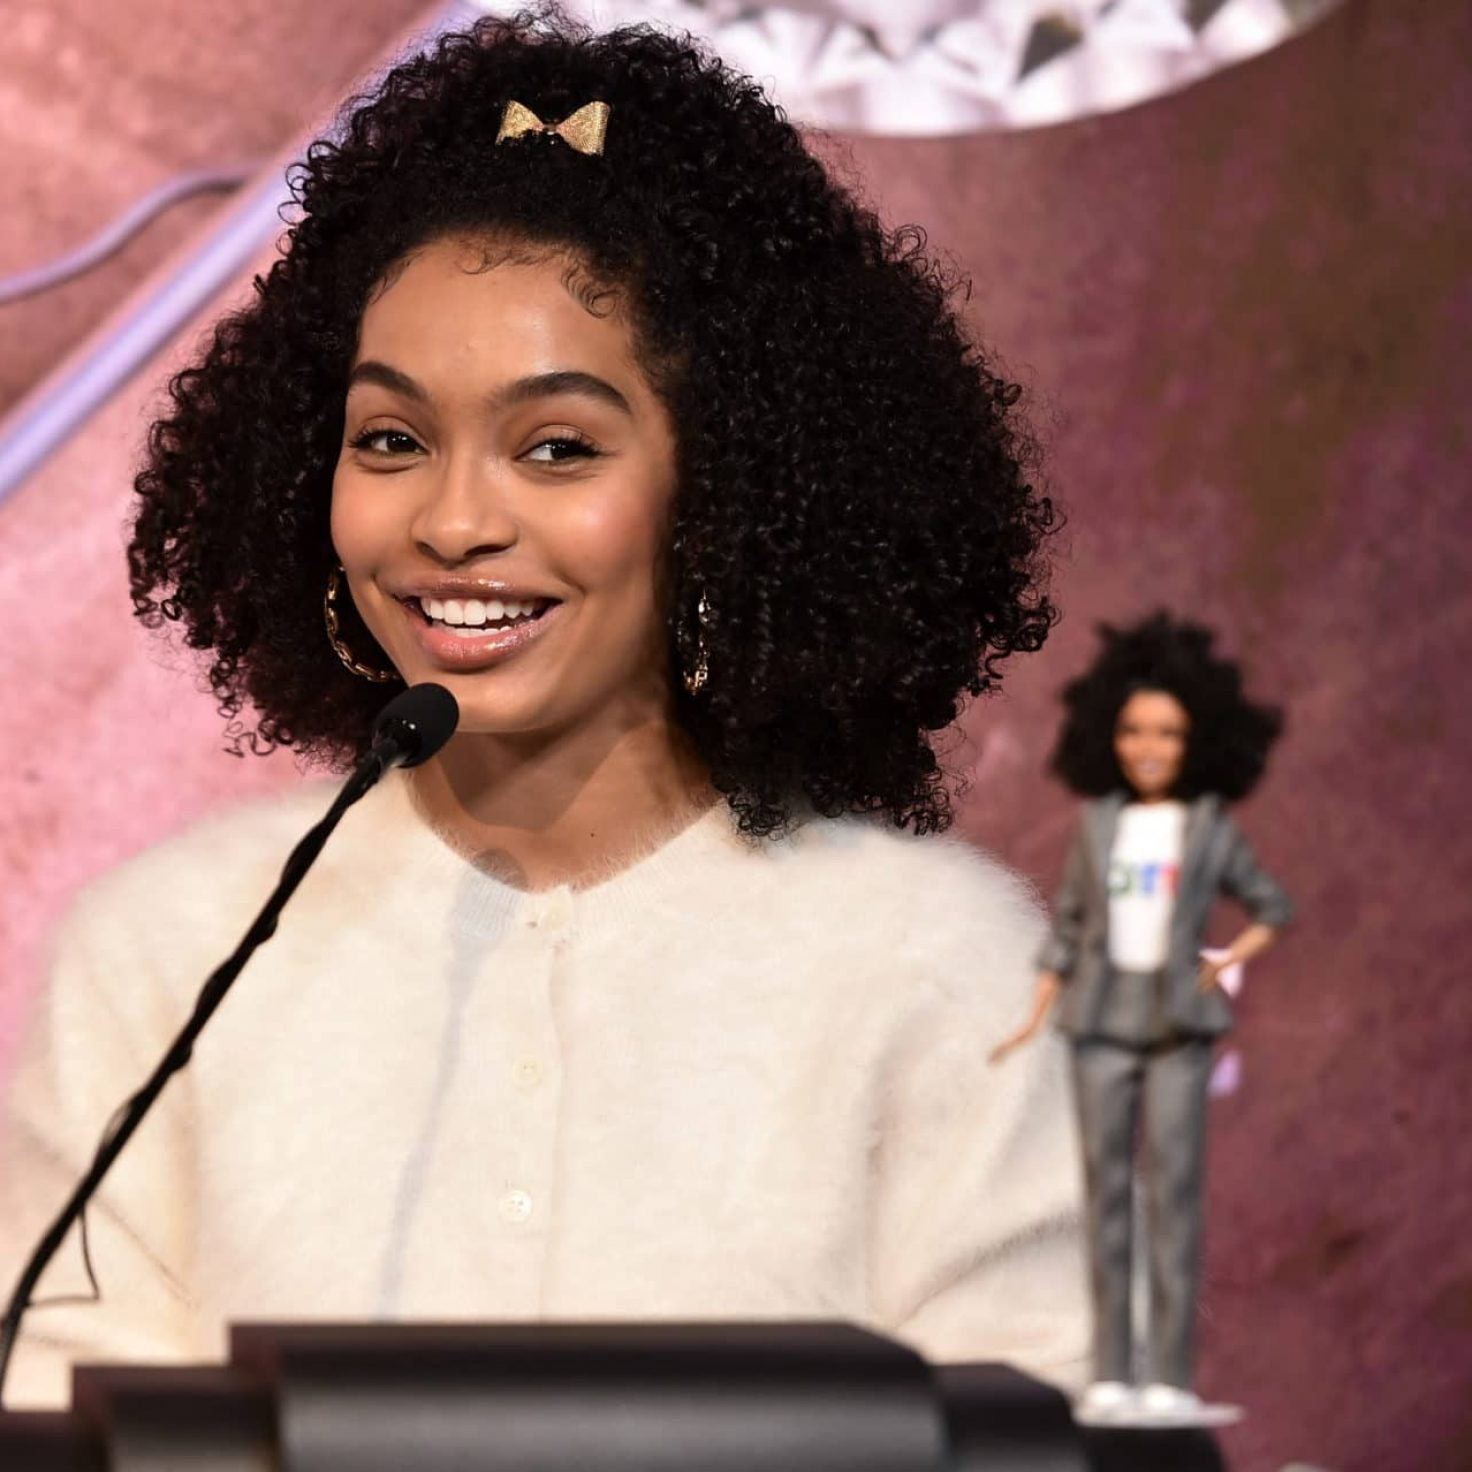 Yara Shahidi Shares How Her Life Has Changed Since Oprah Winfrey Blessed Her